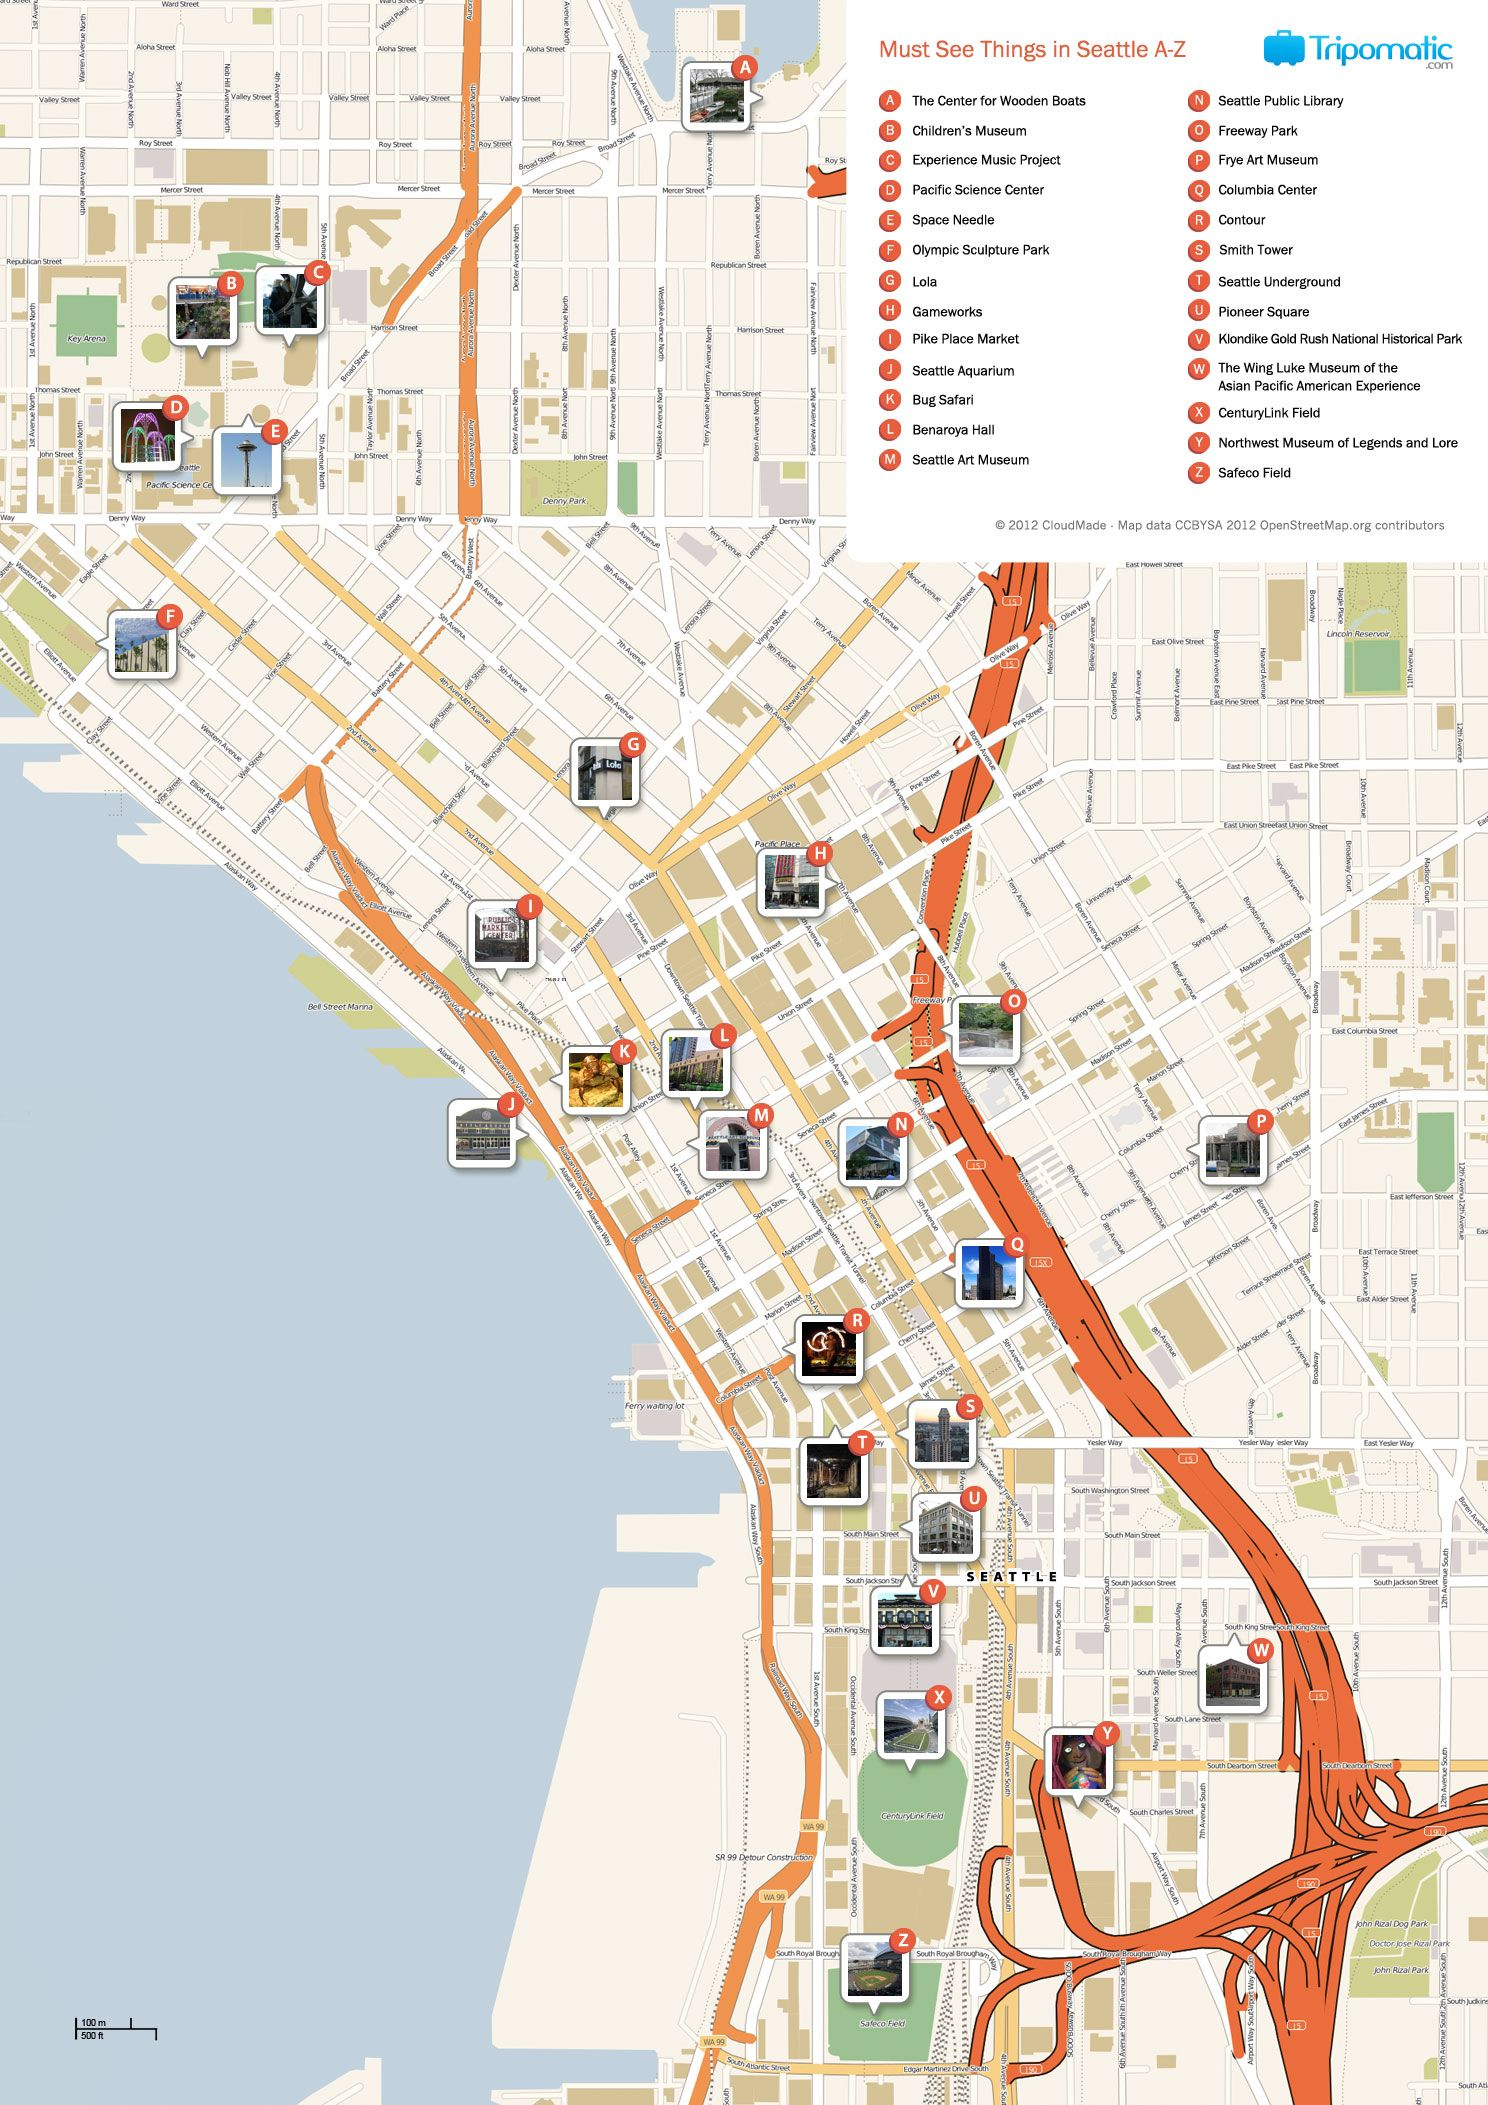 Seattle Attractions Map Seattle Printable Tourist Map | Free Tourist Maps ✈ | Seattle  Seattle Attractions Map